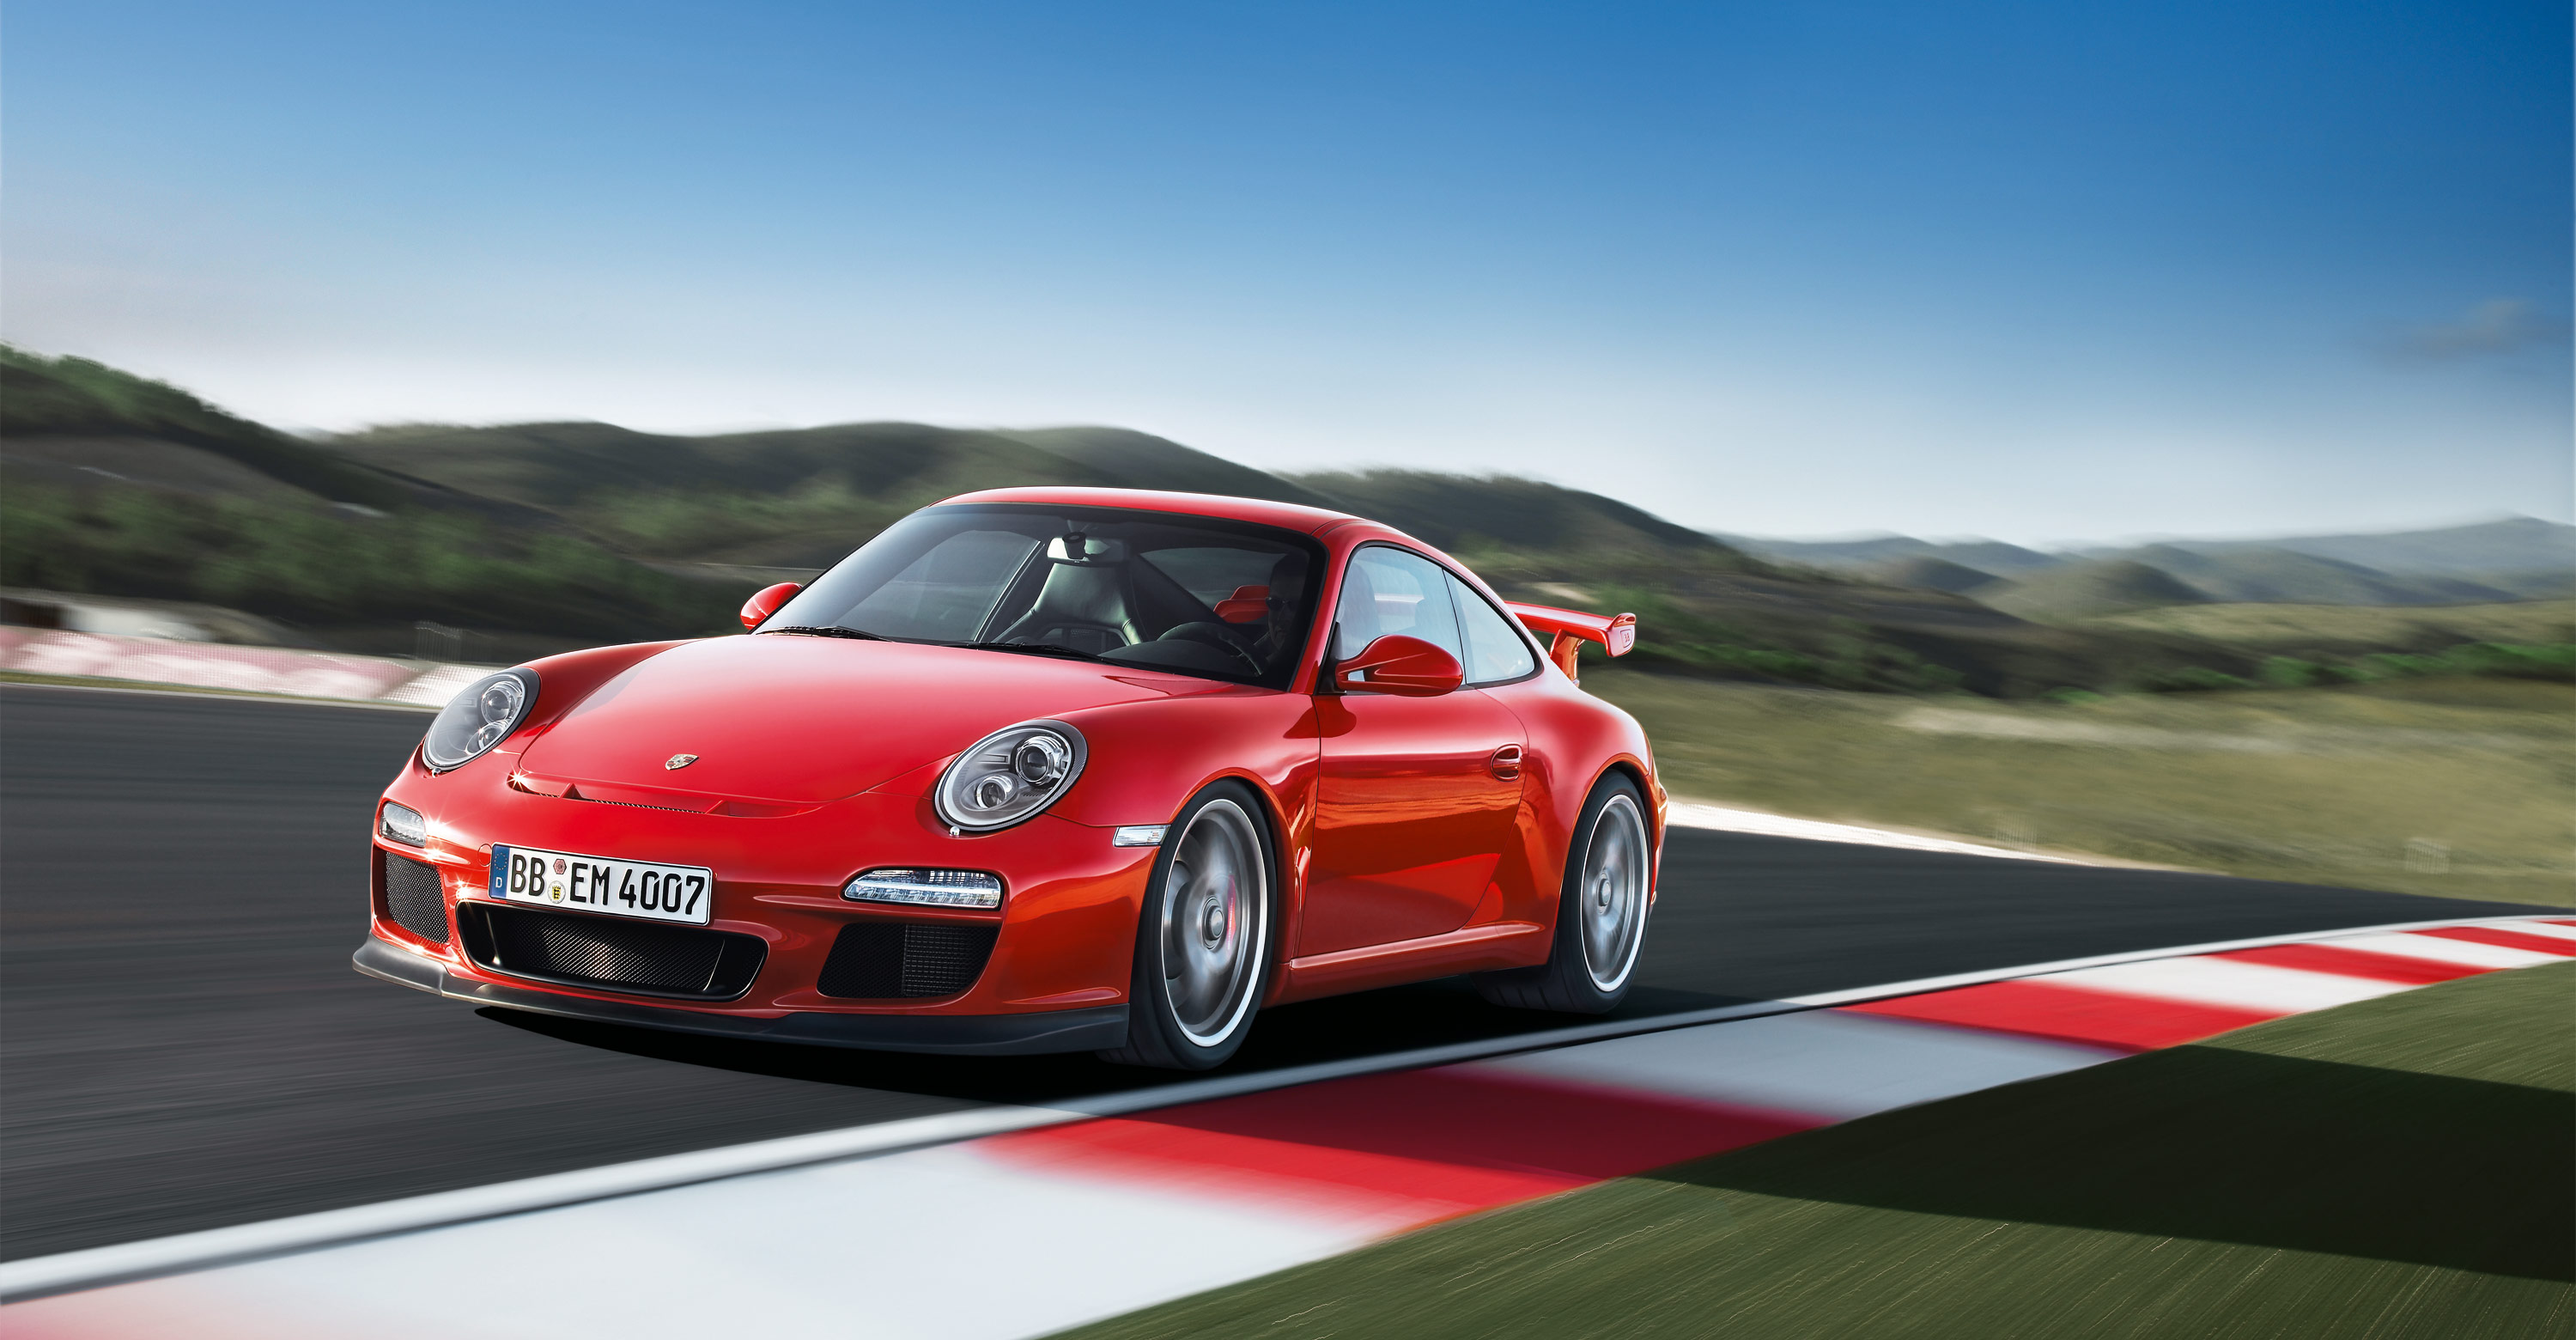 2011 red porsche 911 gt3 wallpapers publicscrutiny Choice Image